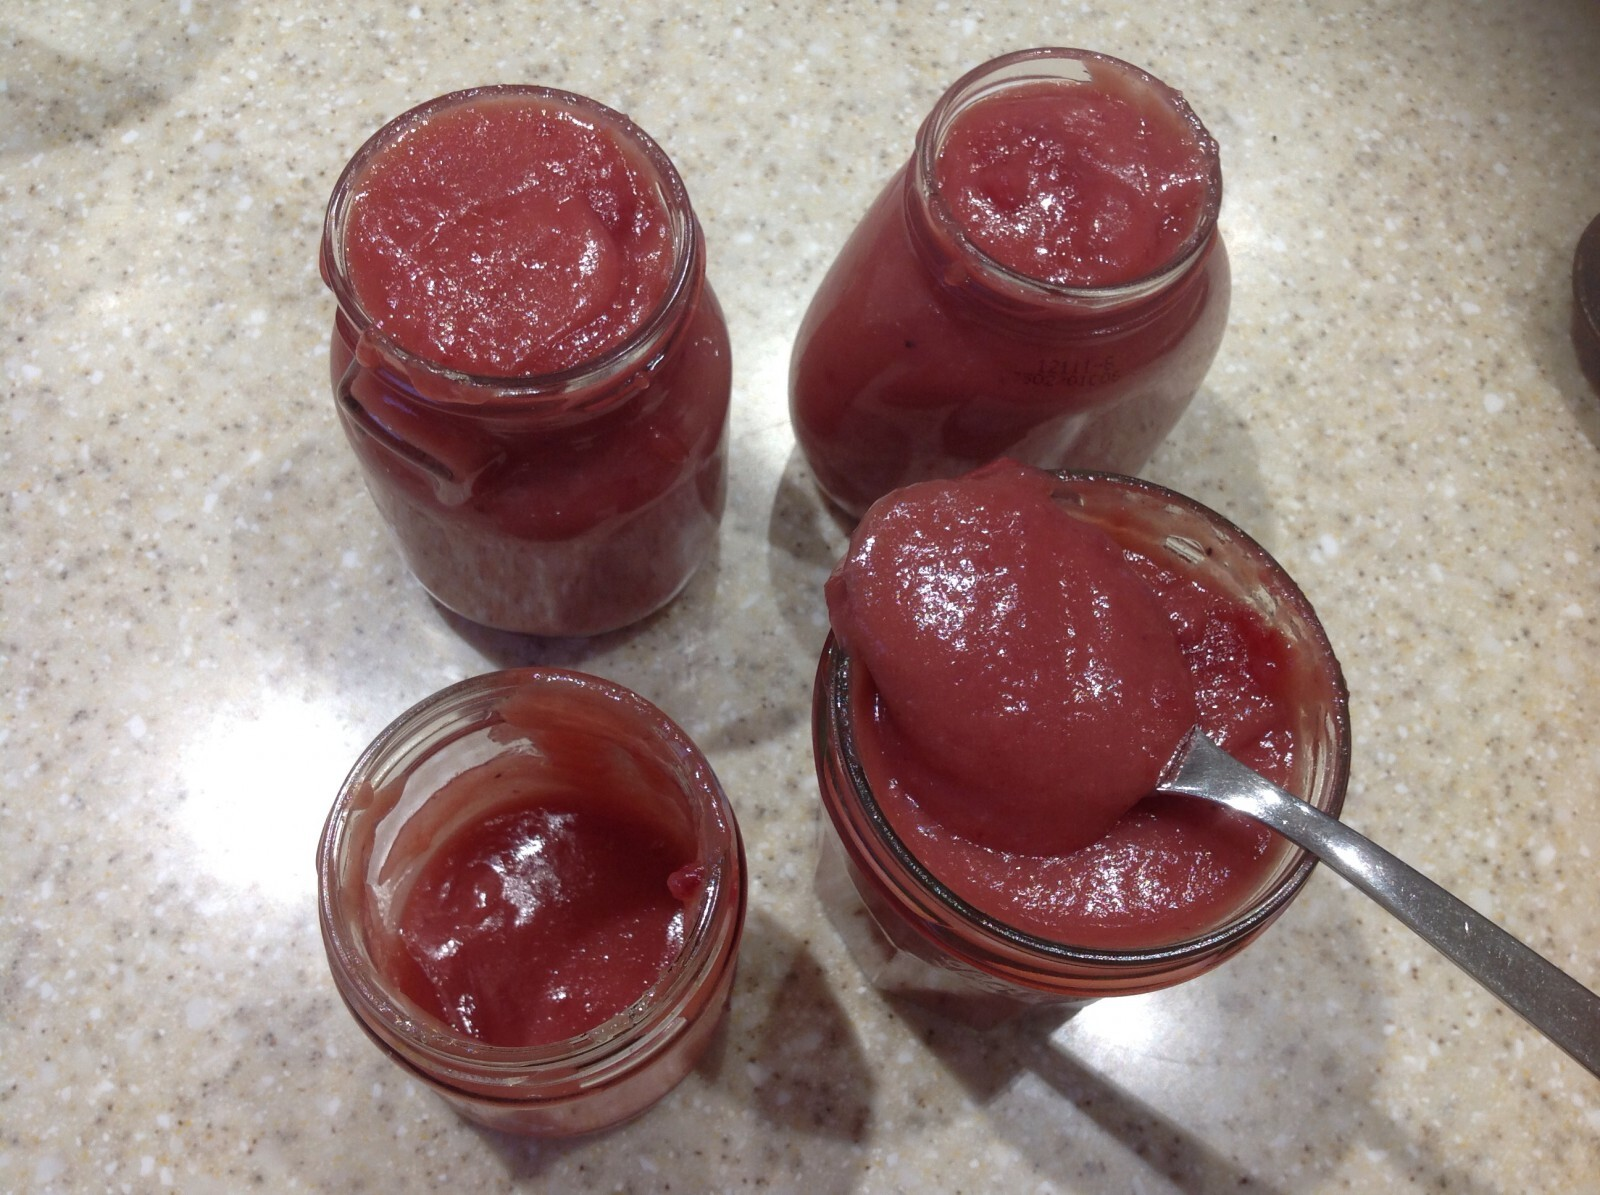 Cranberry Curd, £1.18 a jar, and lots and lots of other variations, including savoury ones